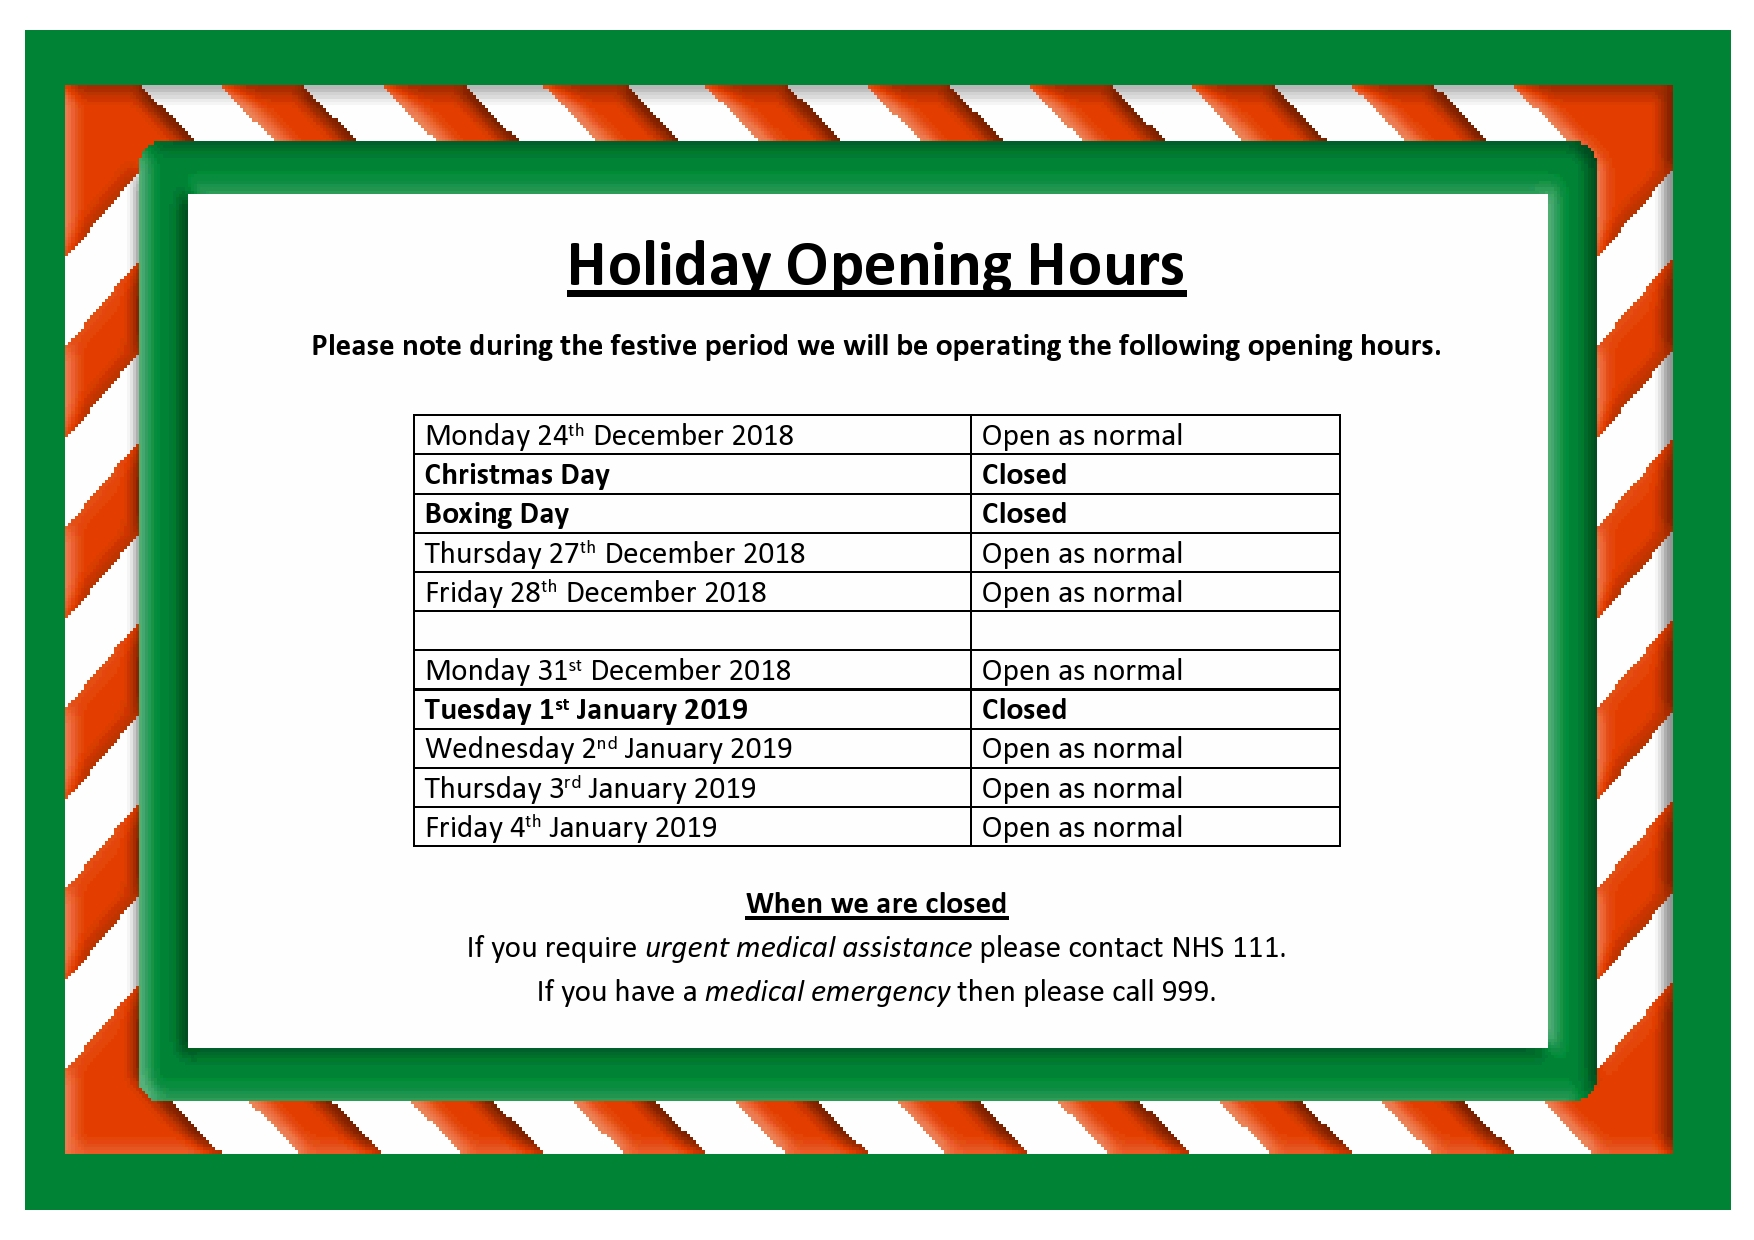 Festive Period Opening Hours for 2018